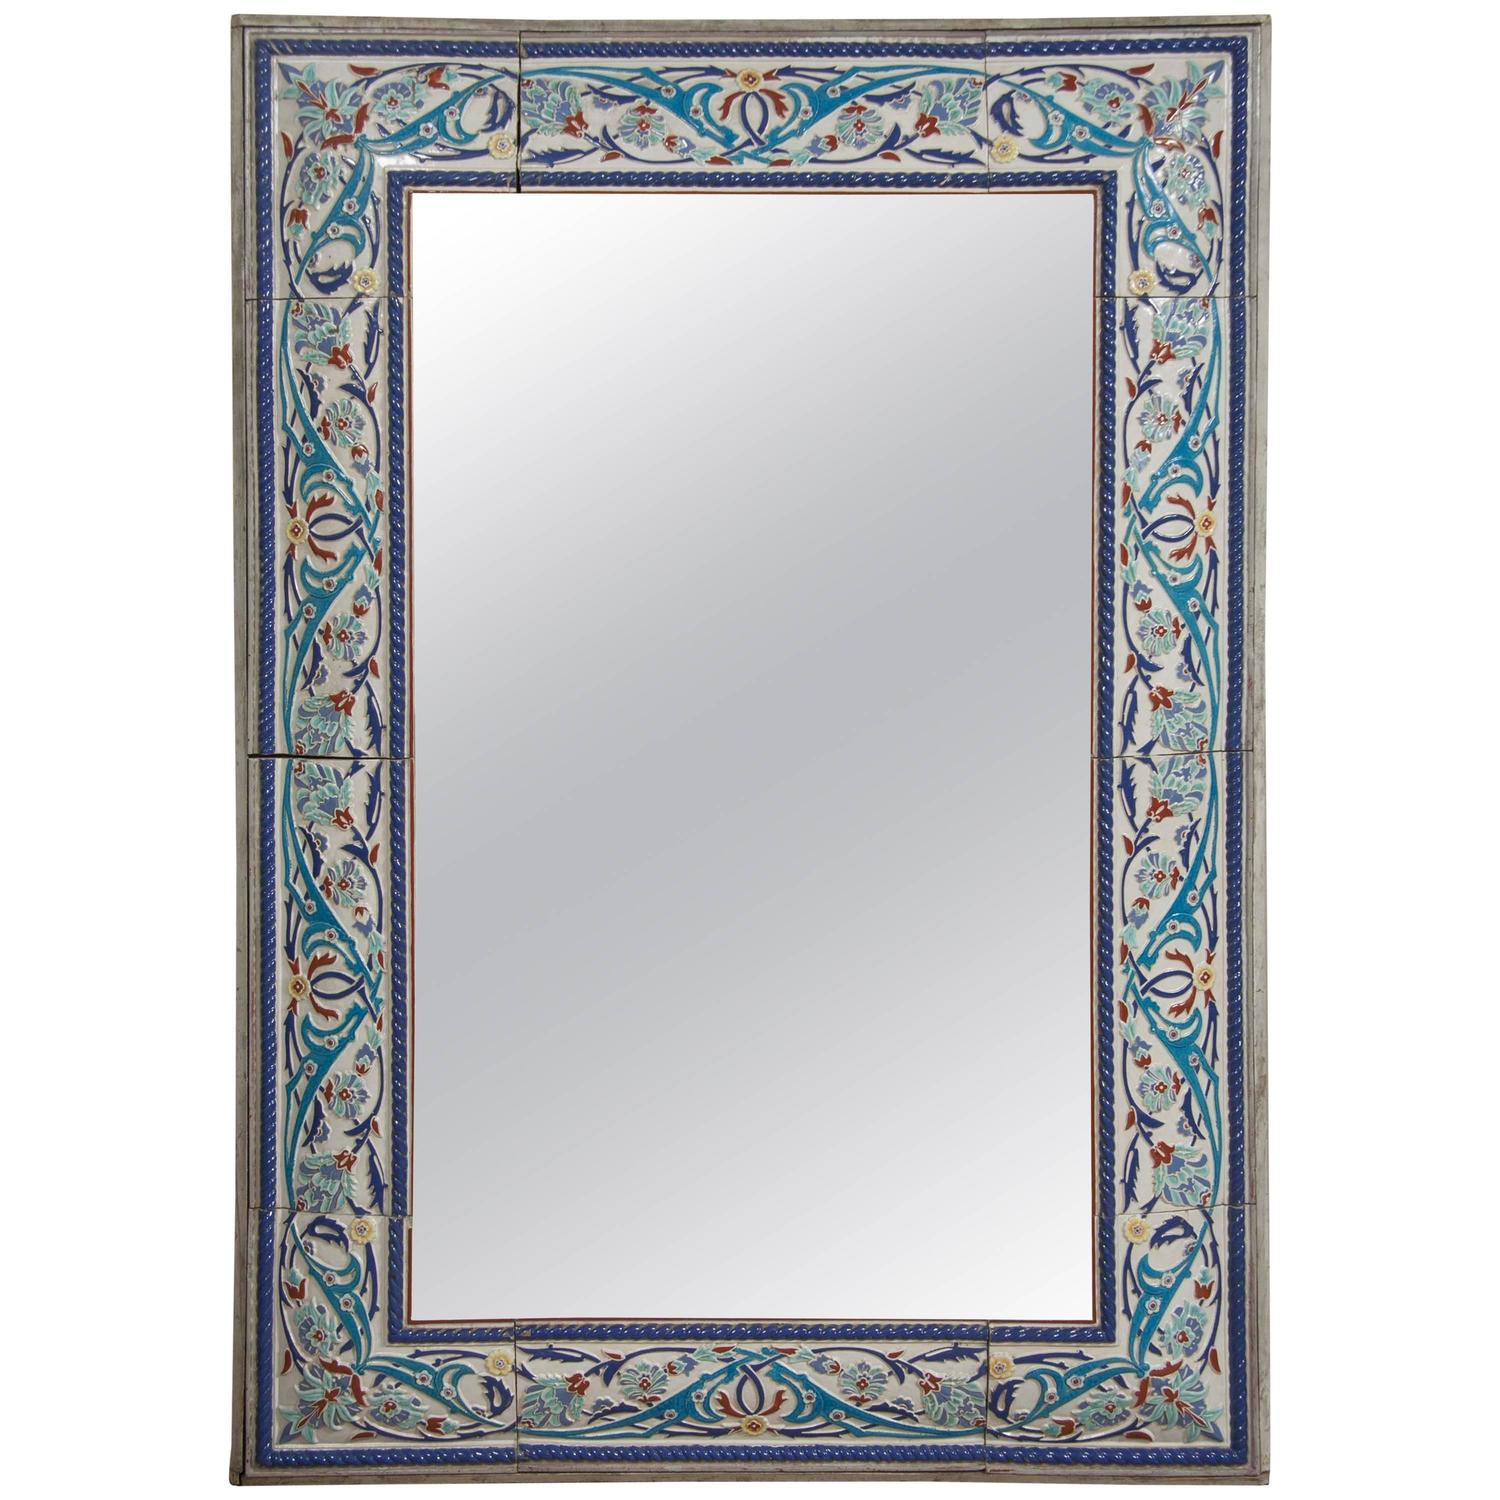 Tiles With Borders: Iznik Style Tile Border Mirror At 1stdibs